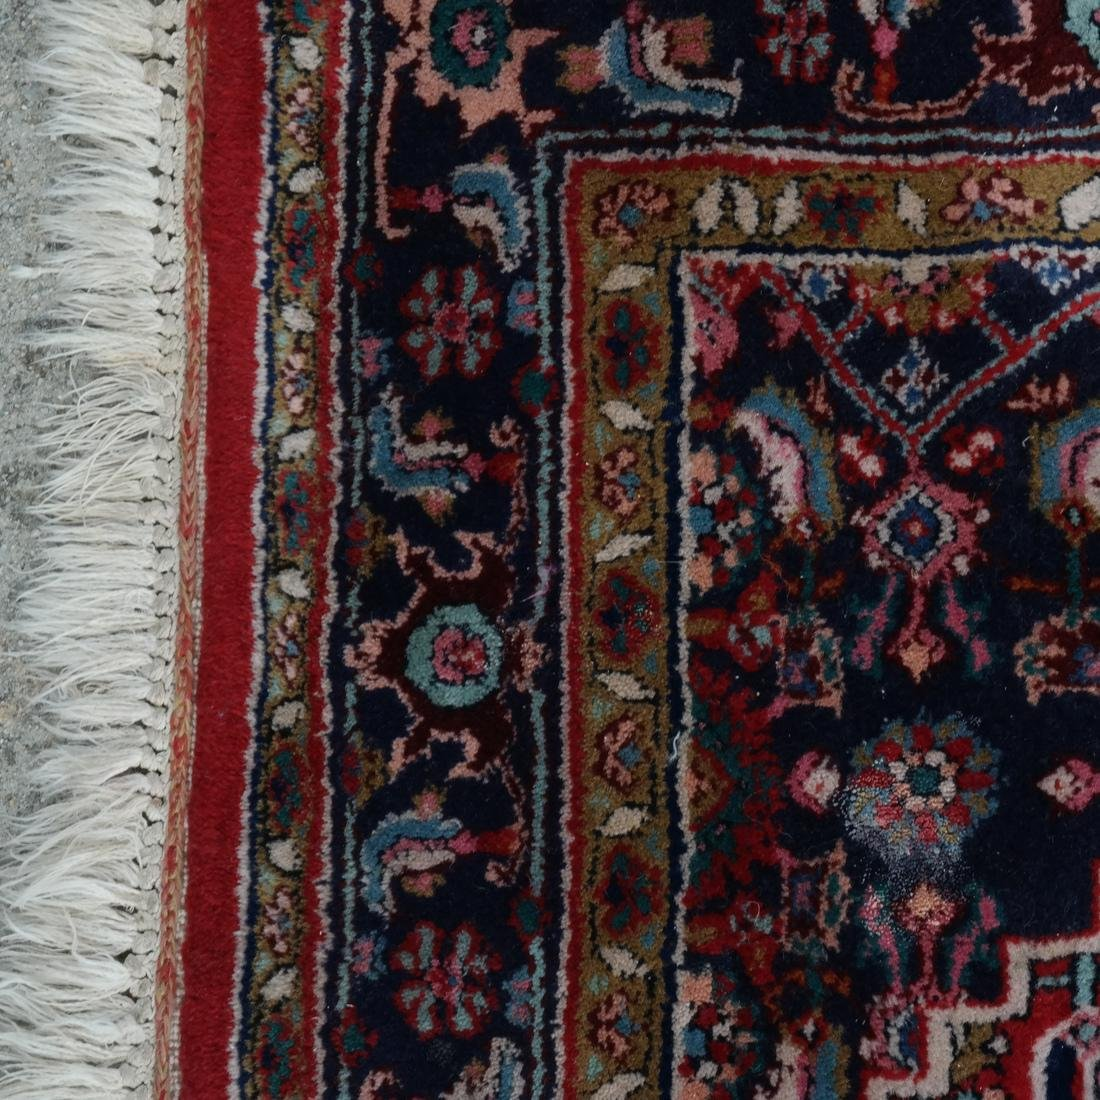 Persian-Style Decorated Rug - 5